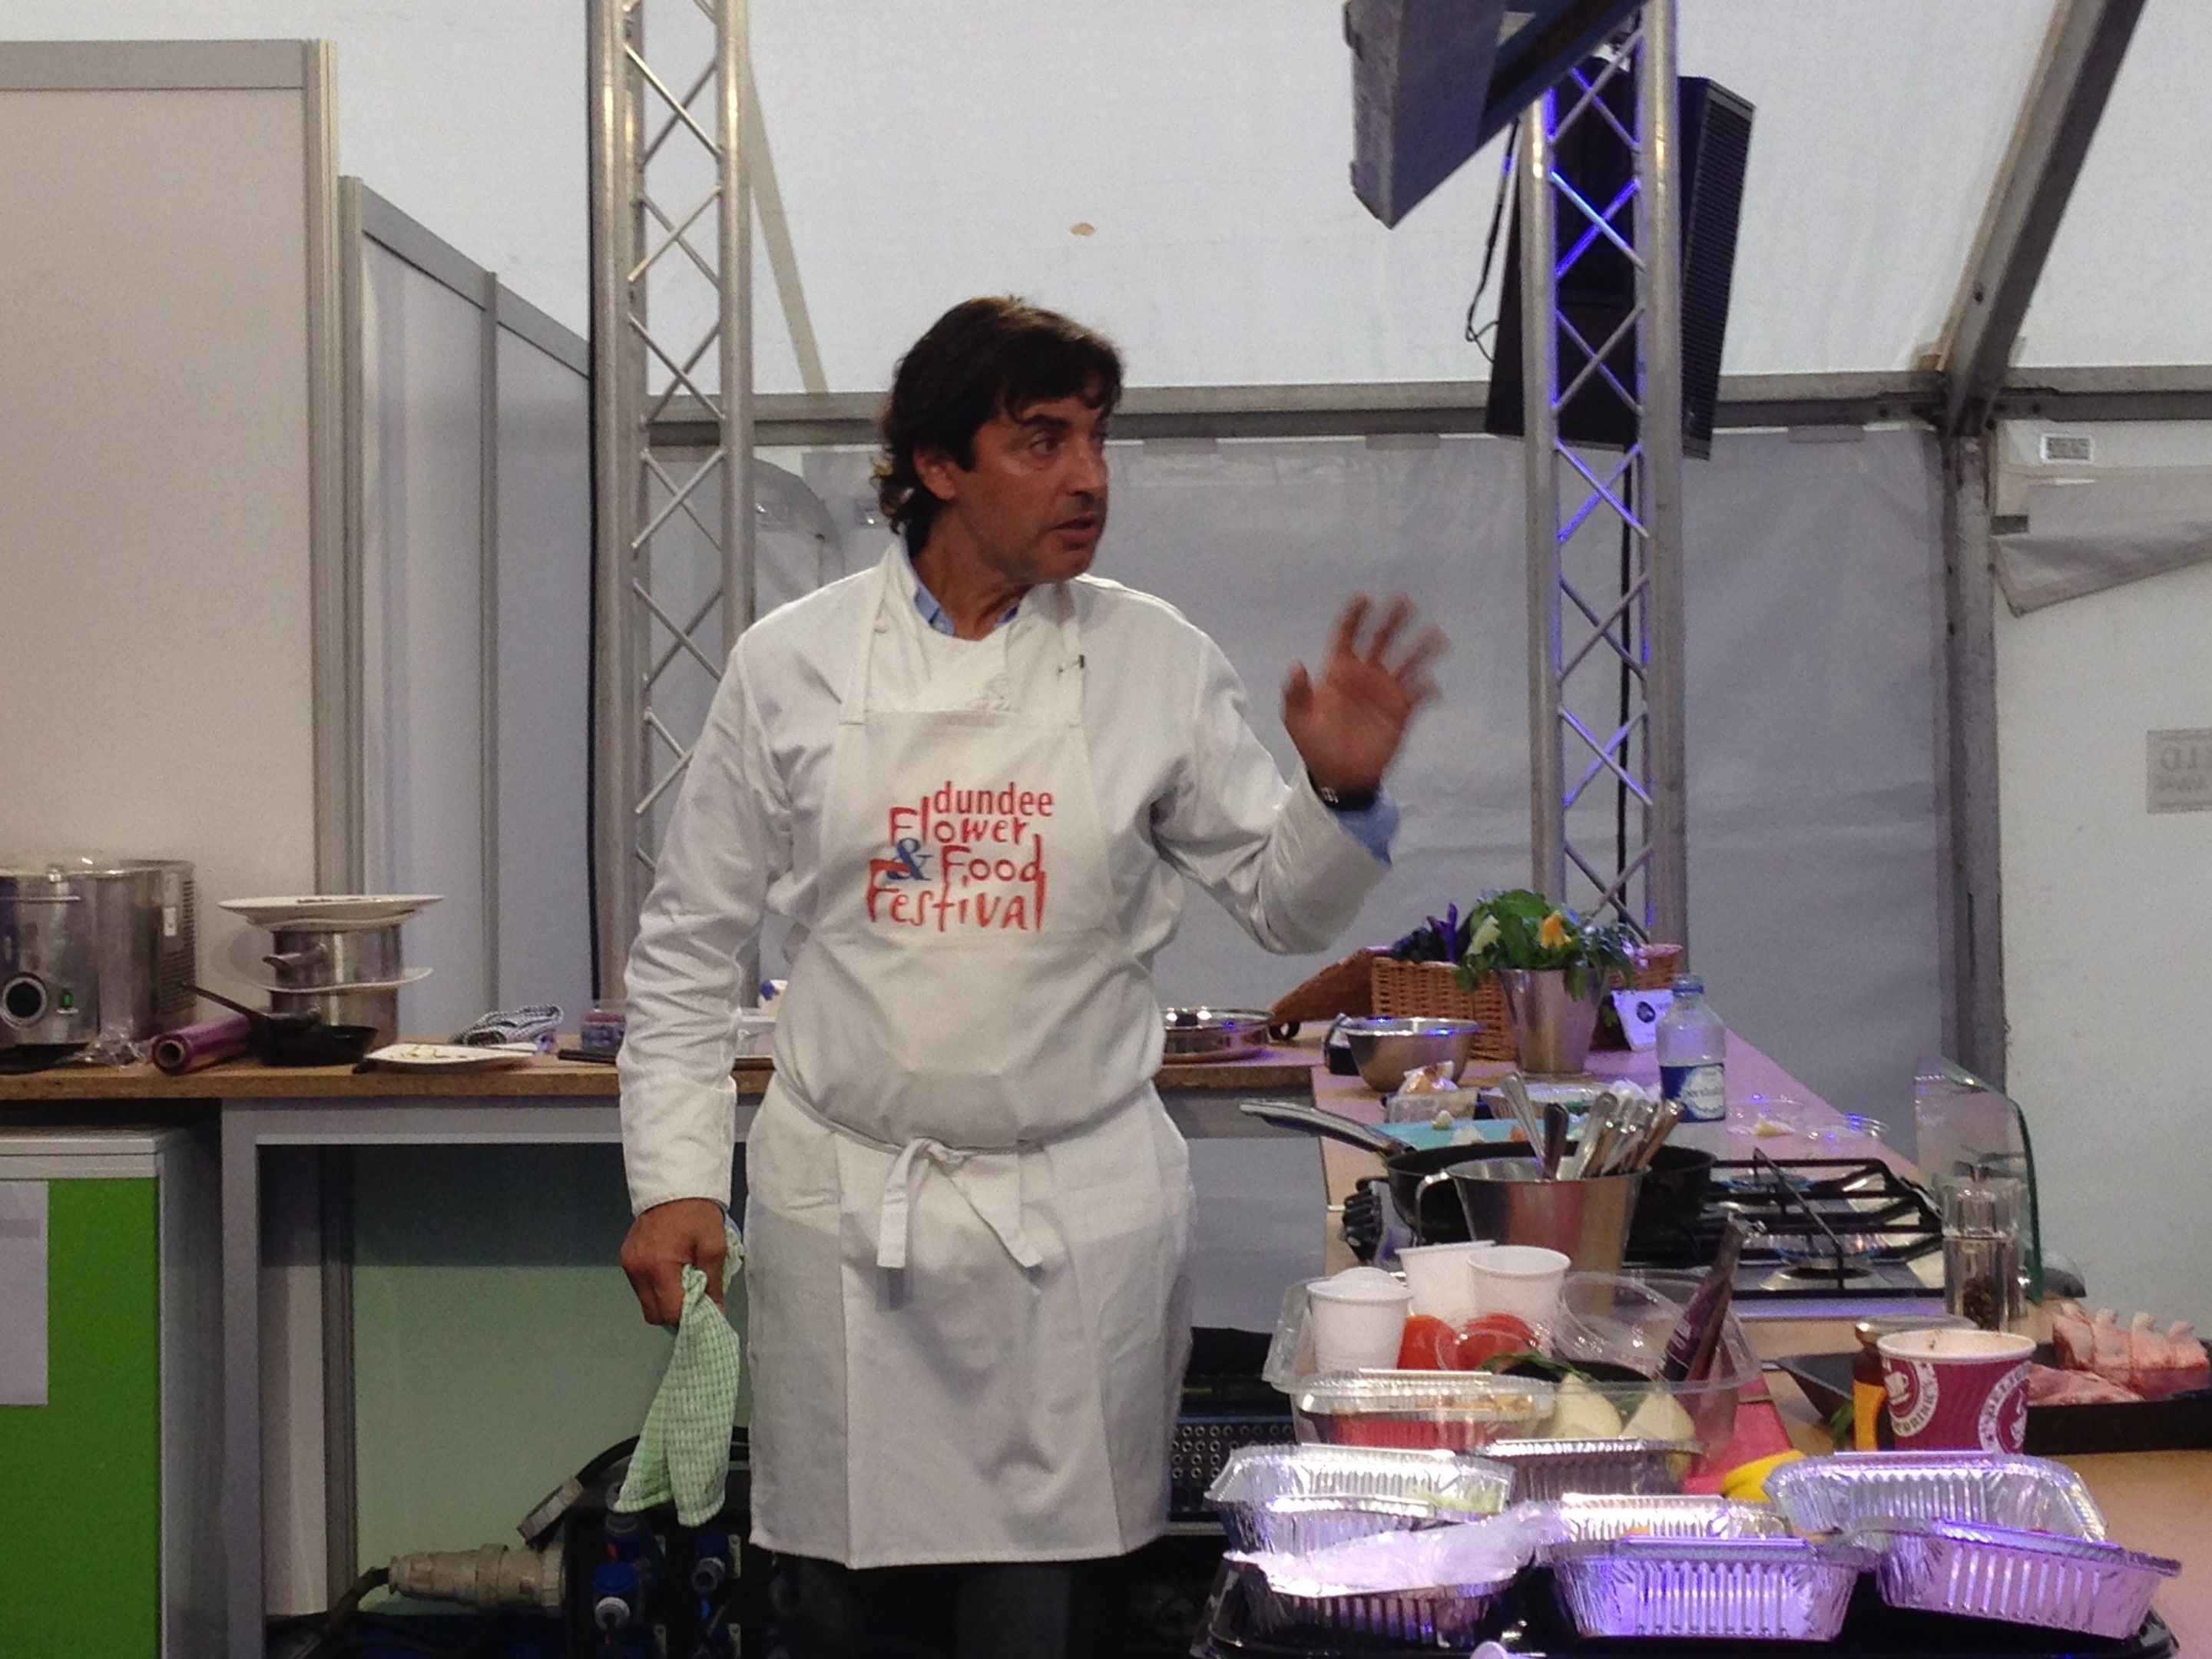 Jean-Christophe Novelli entertains and inspires in the Food Festival Kitchen.